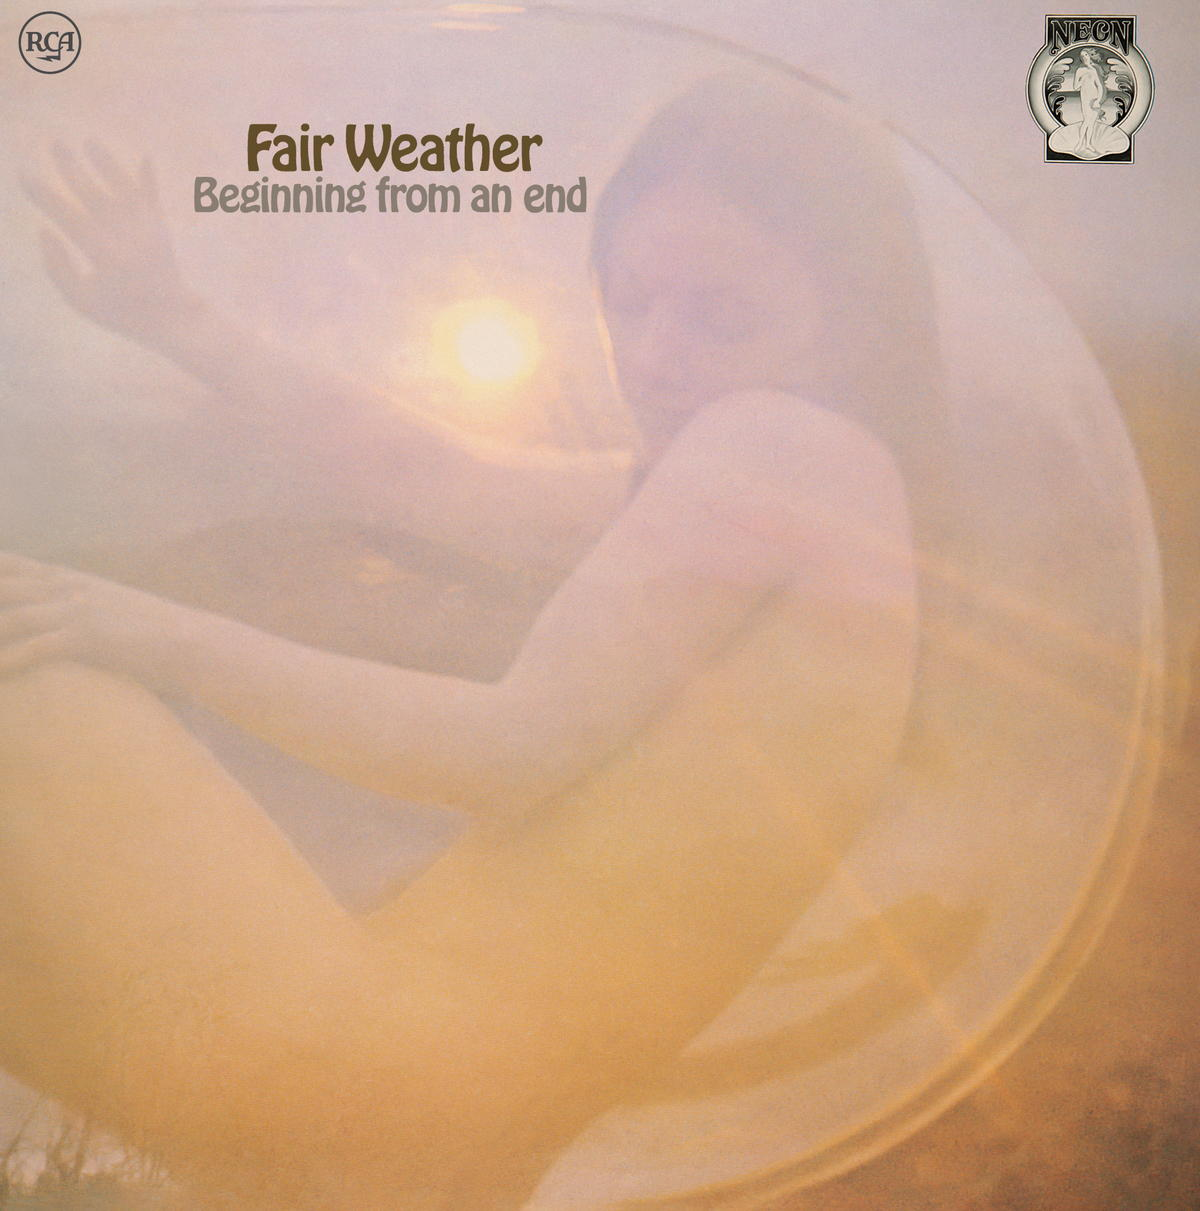 FAIR WEATHER / BEGINNING FROM AN END フェア・ウェザー / 終末からの誕生